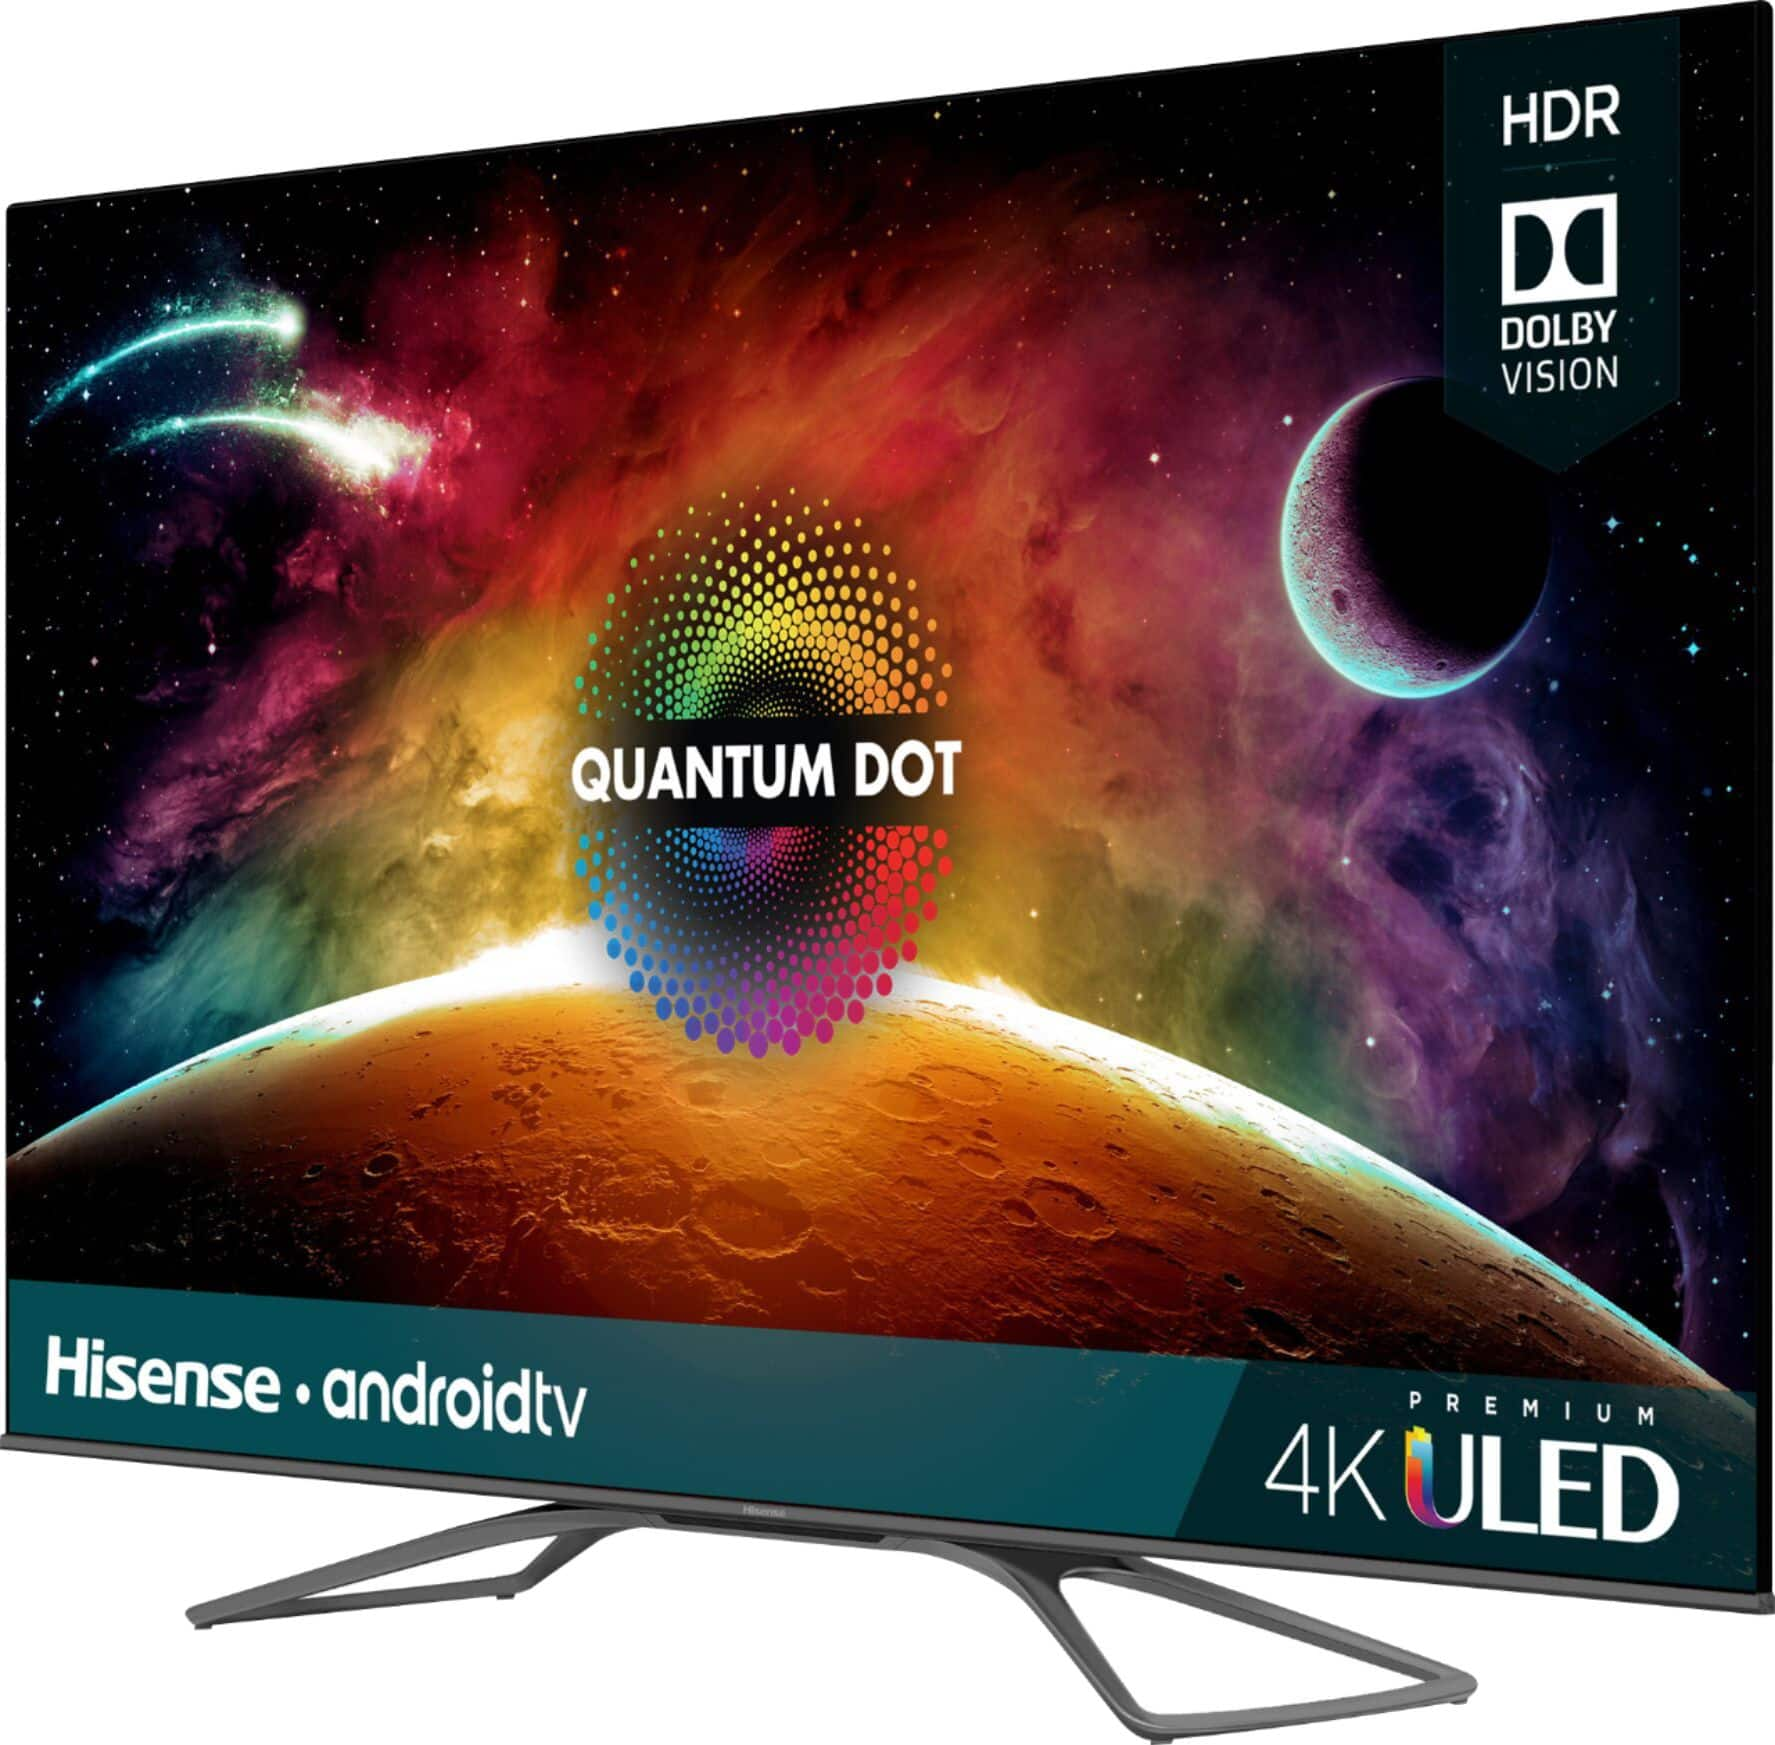 """HiSense 65H9F 65"""" 4K Android HDTV $799 @ Best Buy, Free Shipping"""